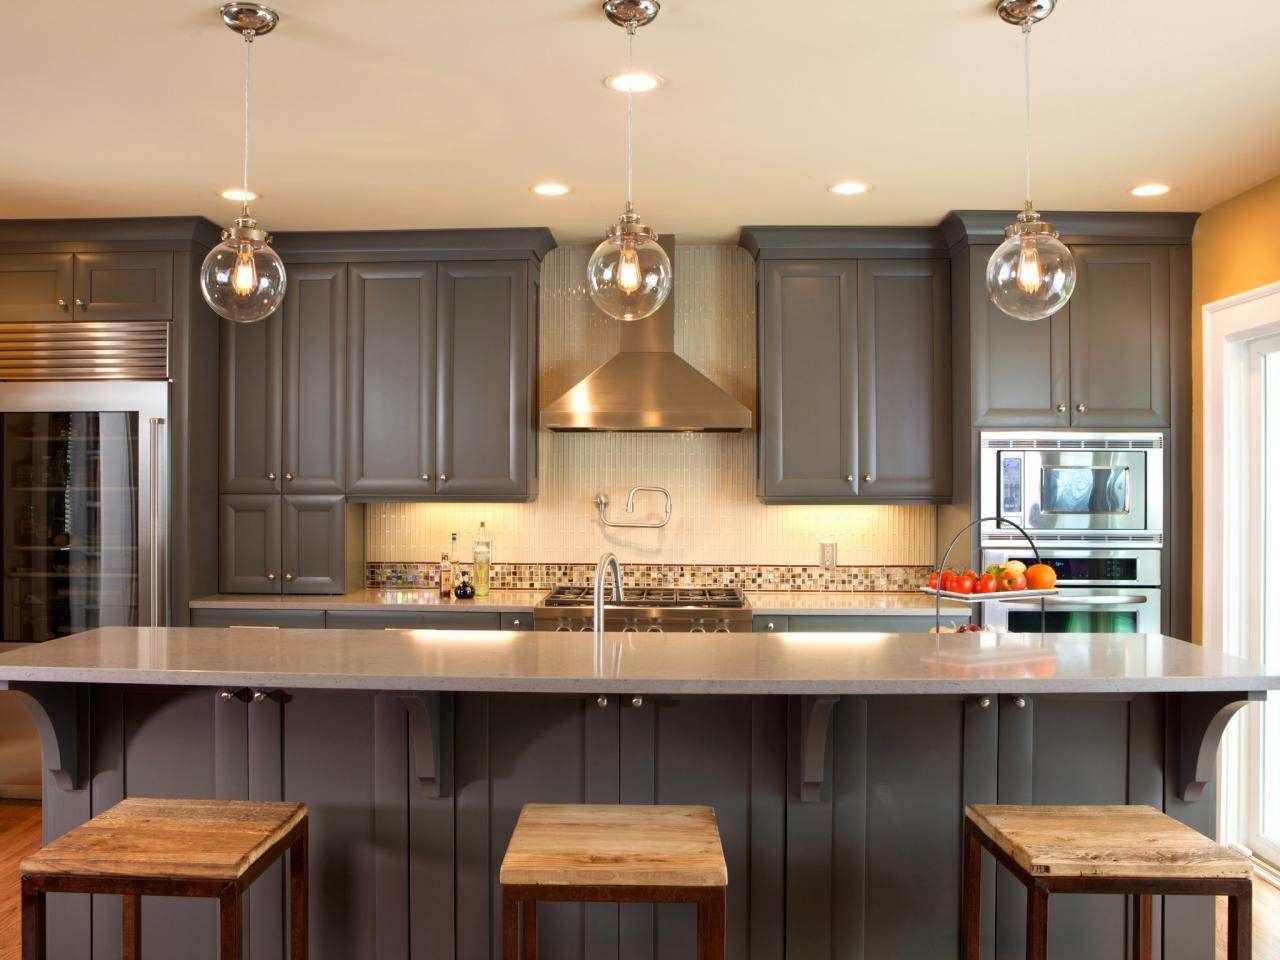 Natural Design Of The Kitchen Paint Color With Maple Cabinets And Woodern Floor Jpg 1 500 1 000 Pixels Kitchen Design Popular Kitchen Colors Blue Kitchen Walls